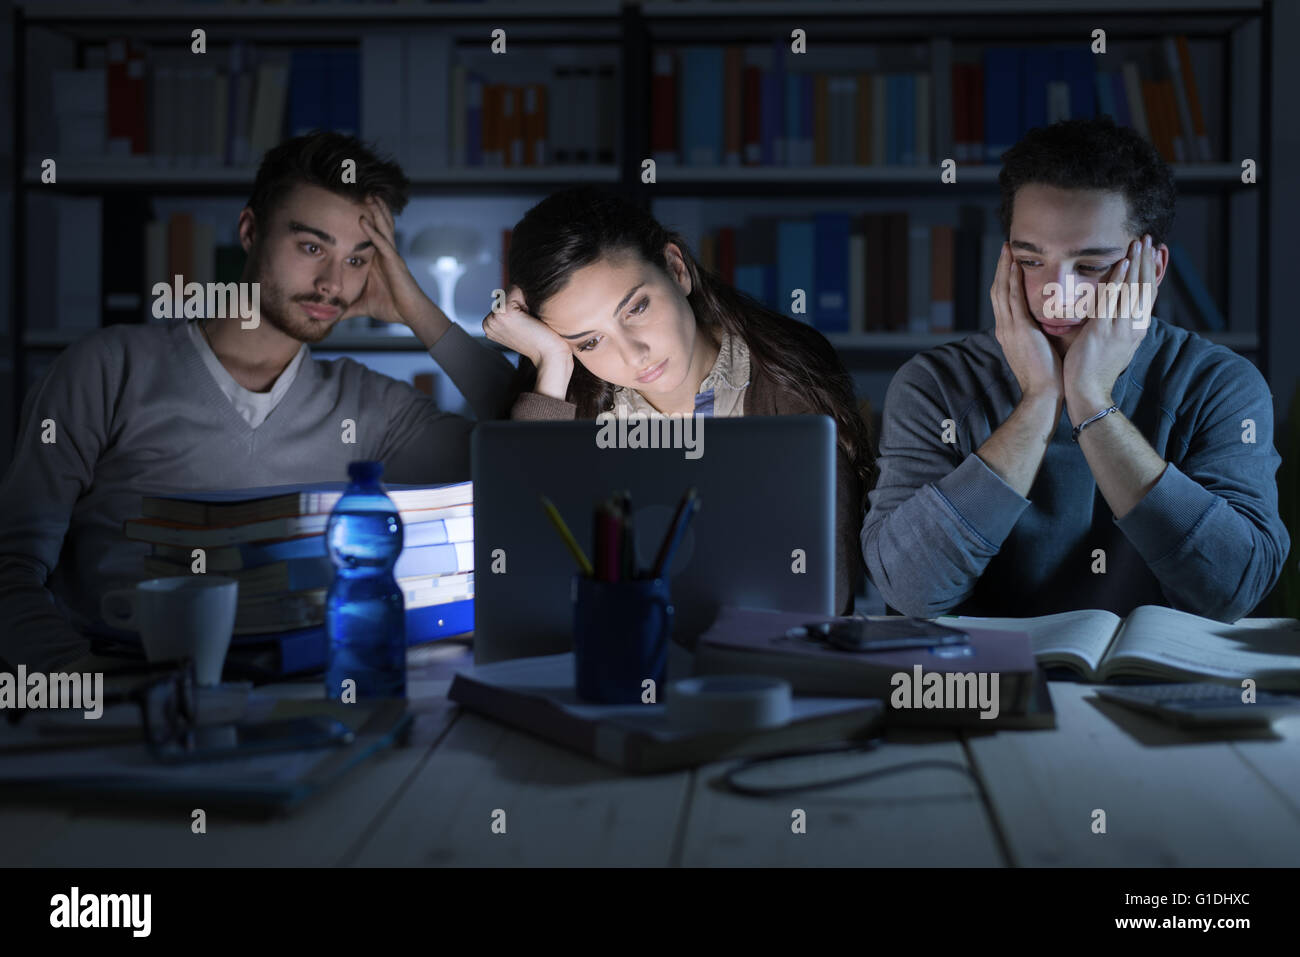 Tired students studying late at night, they are staring at the laptop screen and falling asleep - Stock Image